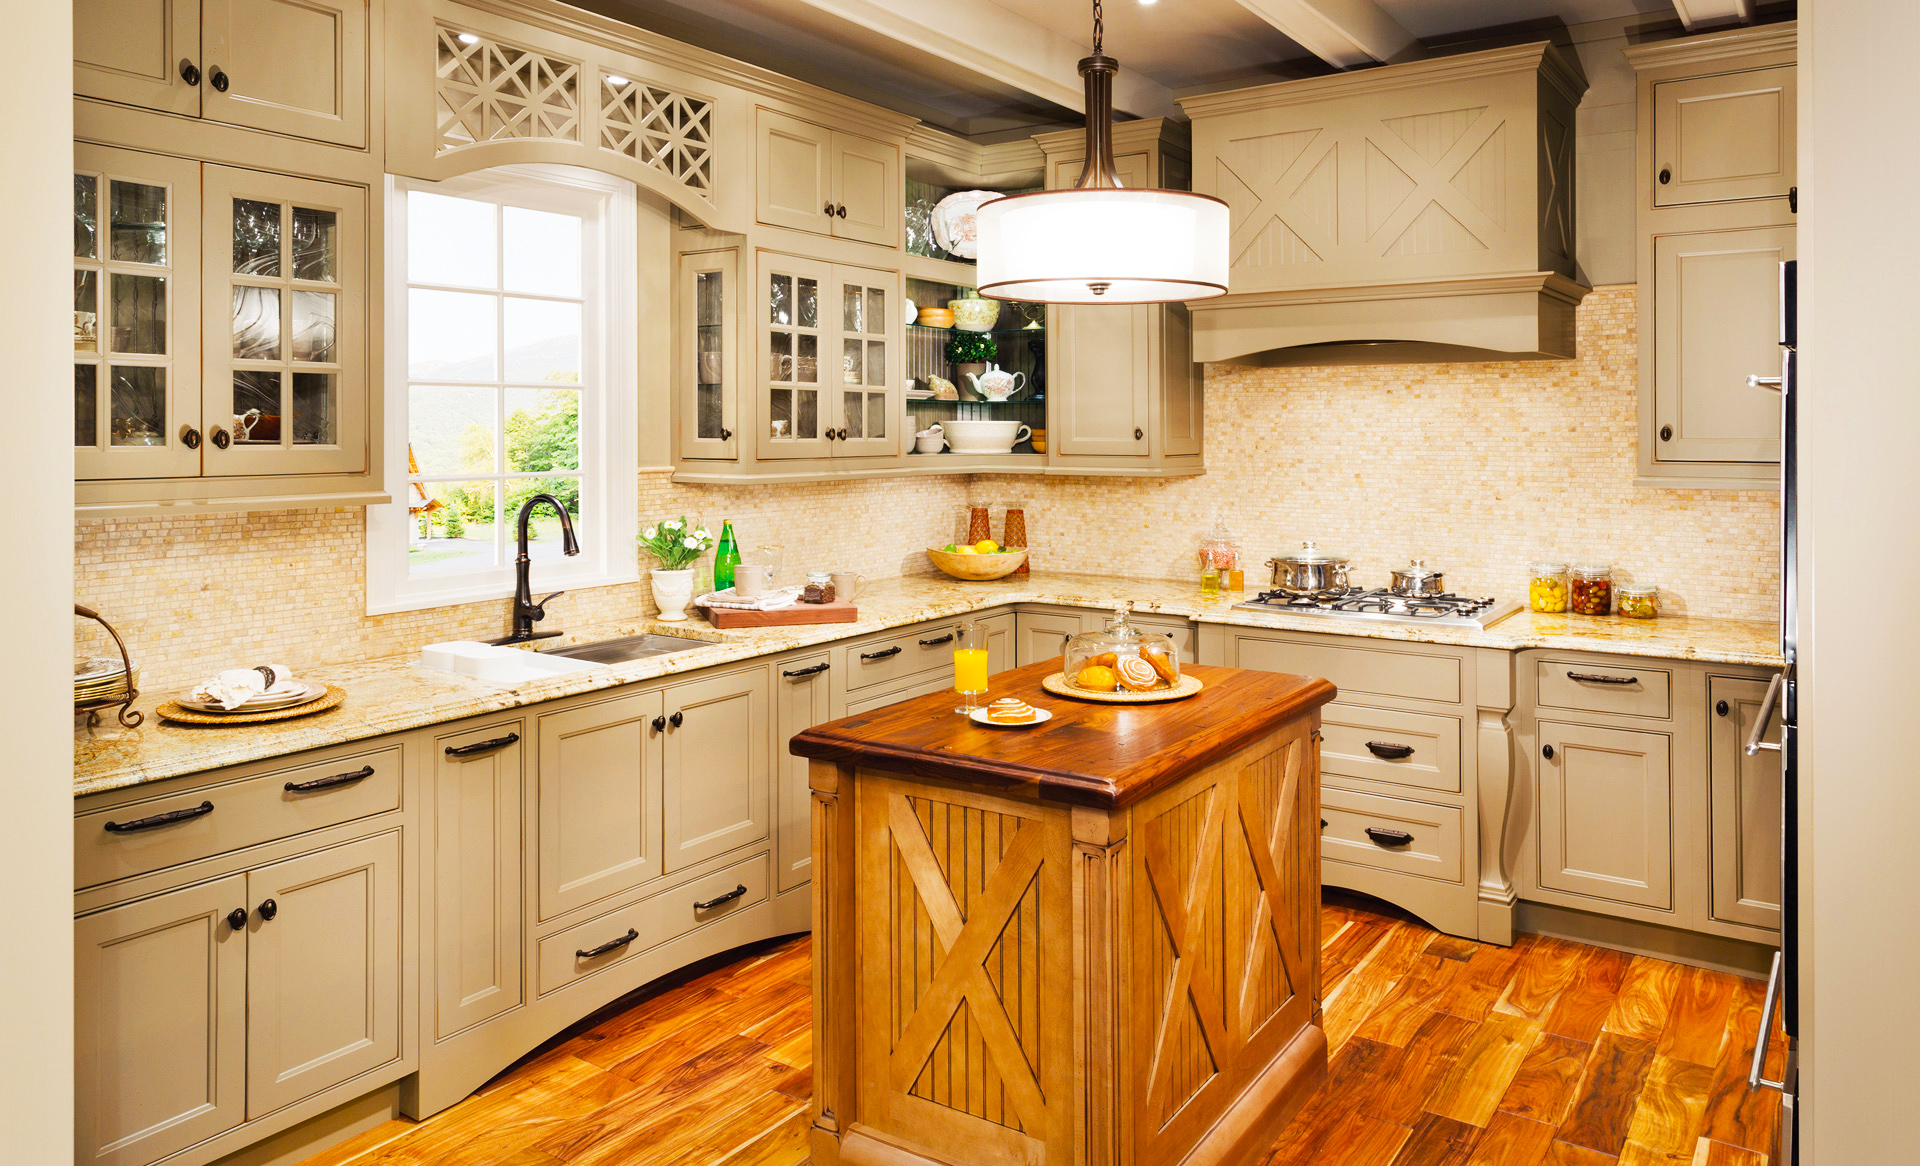 custom-kitchen-cabinets-design-remodel-ideas-for-small-white-kitchen-cabinets-layouts-from-new-oak-quality-cabinets